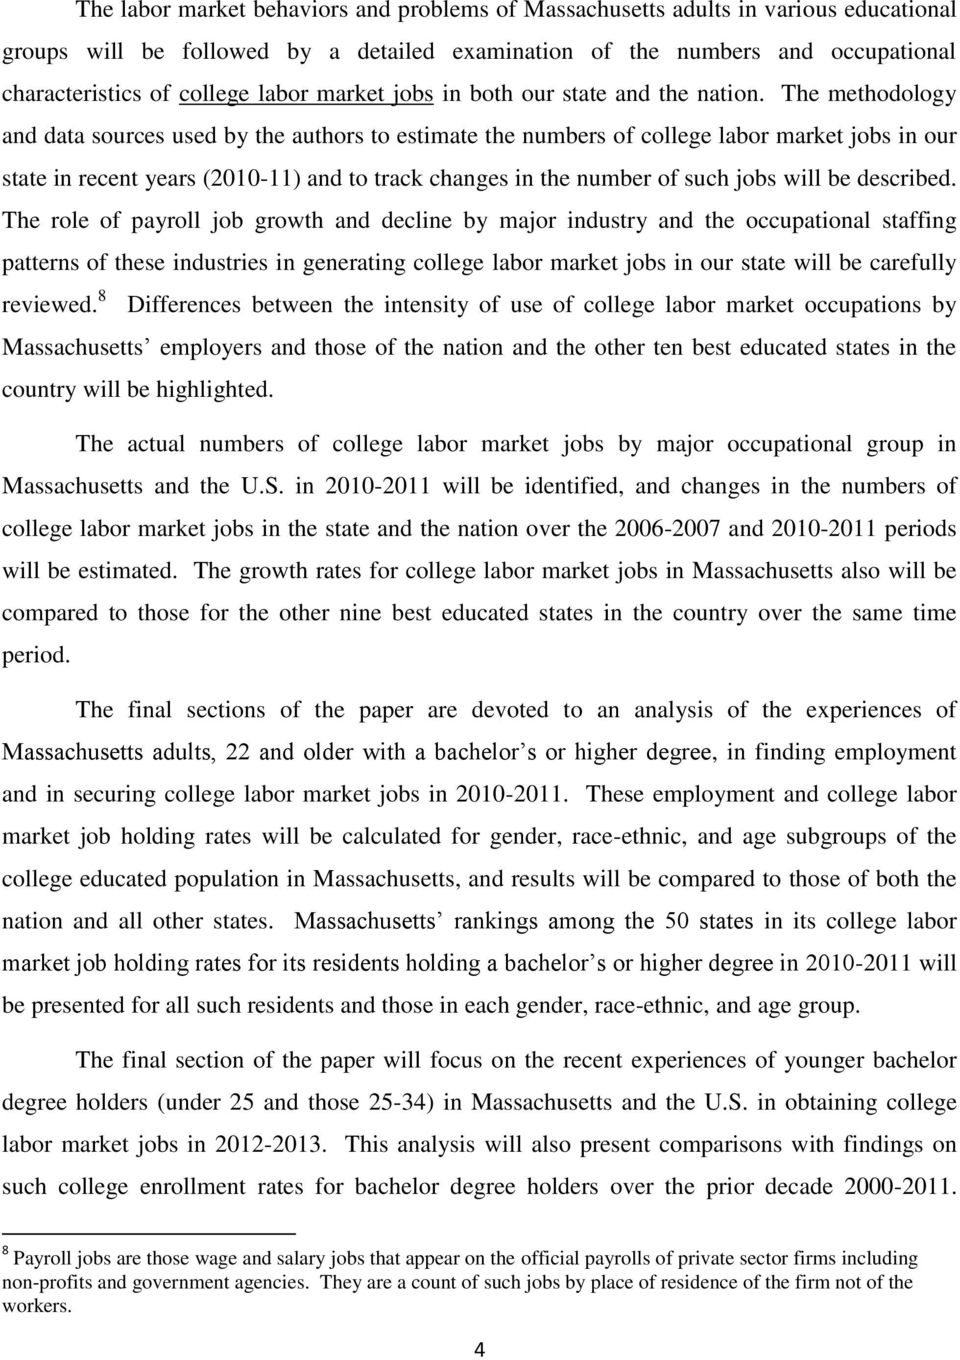 The methodology and data sources used by the authors to estimate the numbers of college labor market jobs in our state in recent years (2010-11) and to track changes in the number of such jobs will